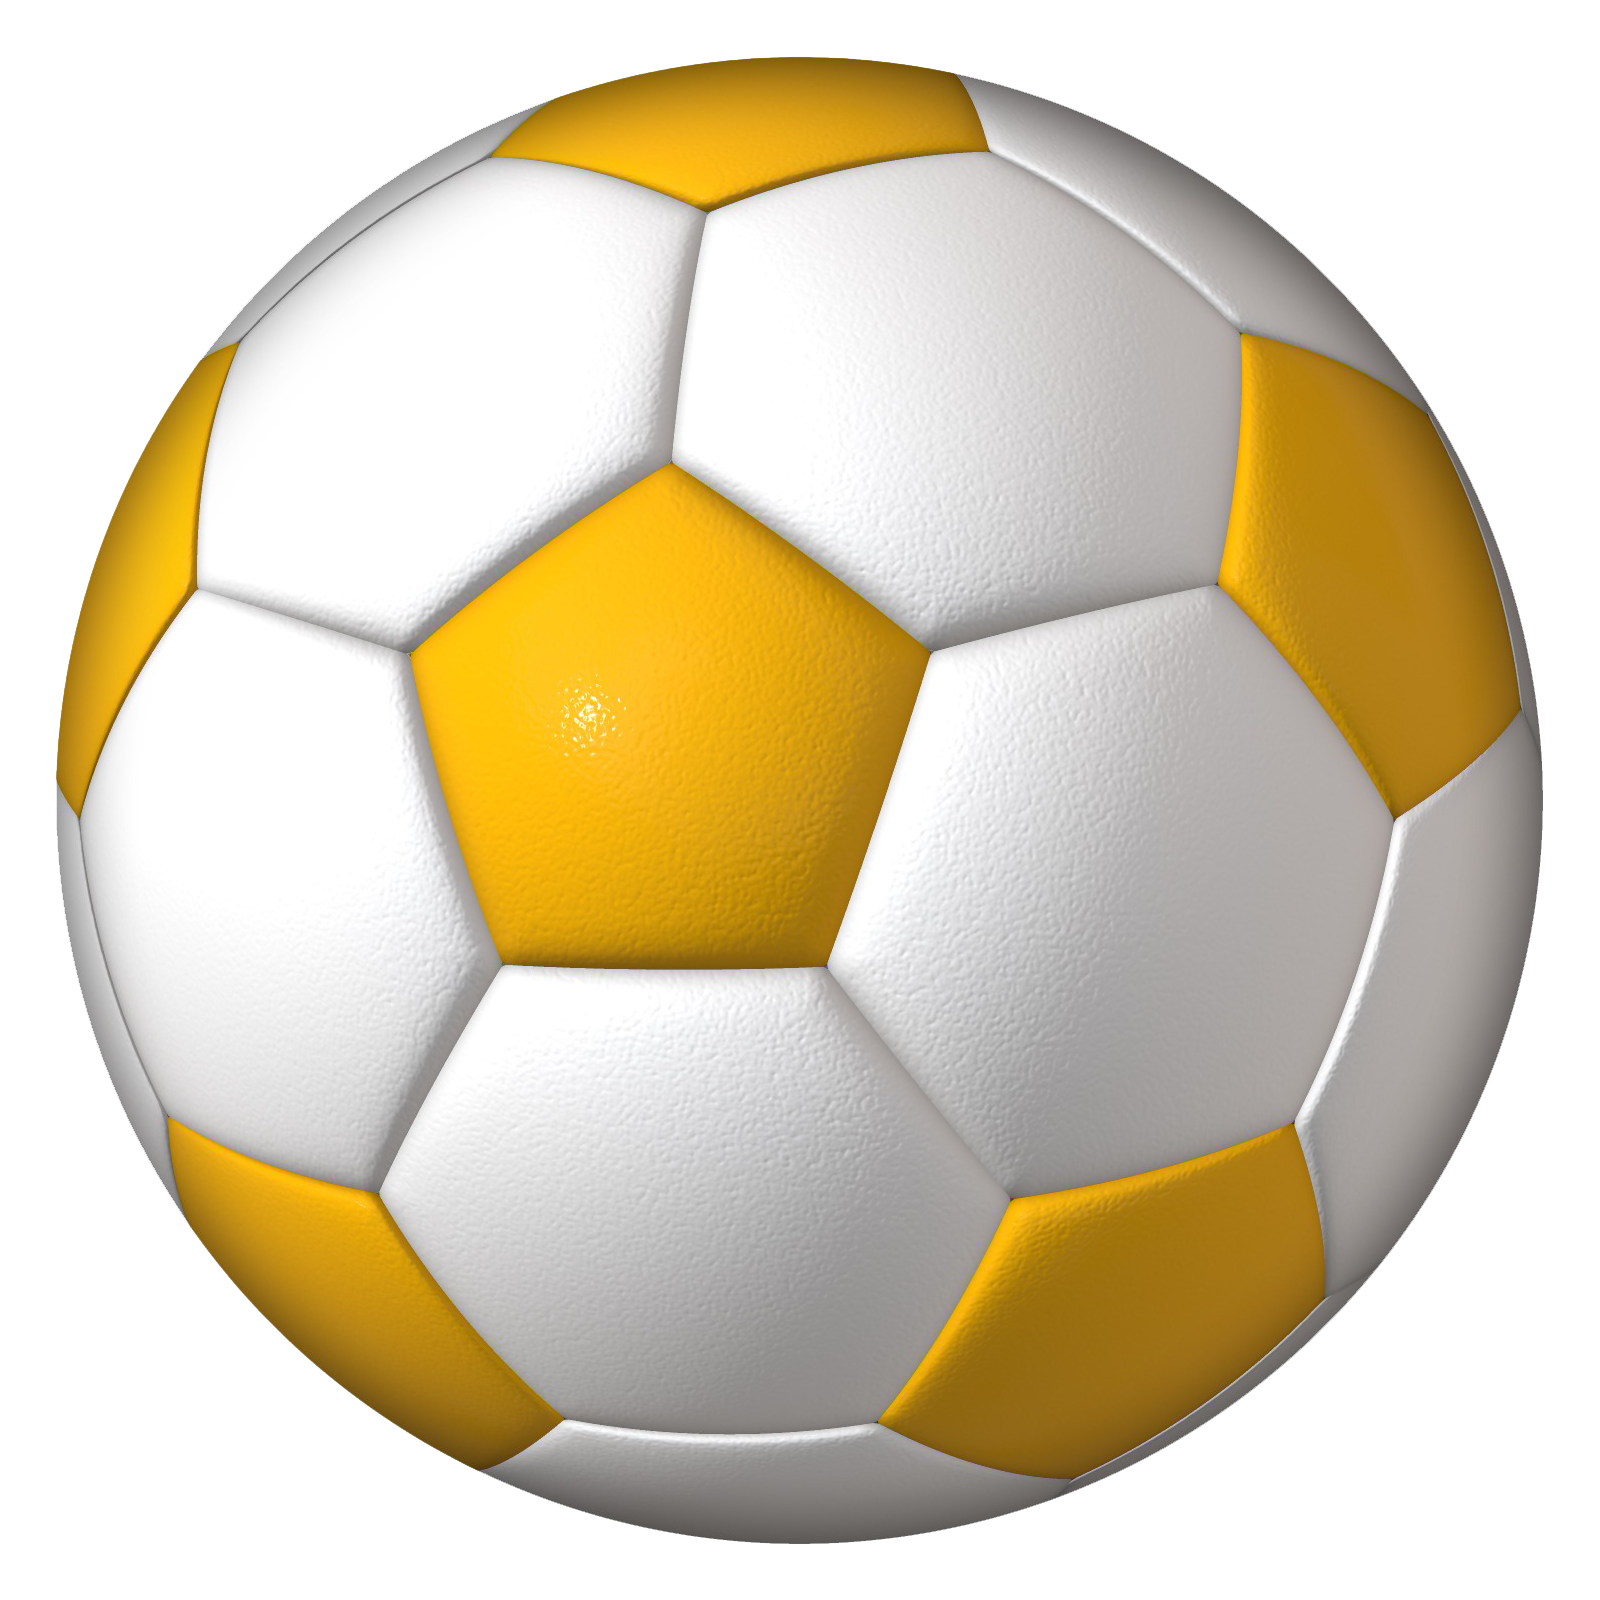 Football PNG Image With Transparent Back #87548.